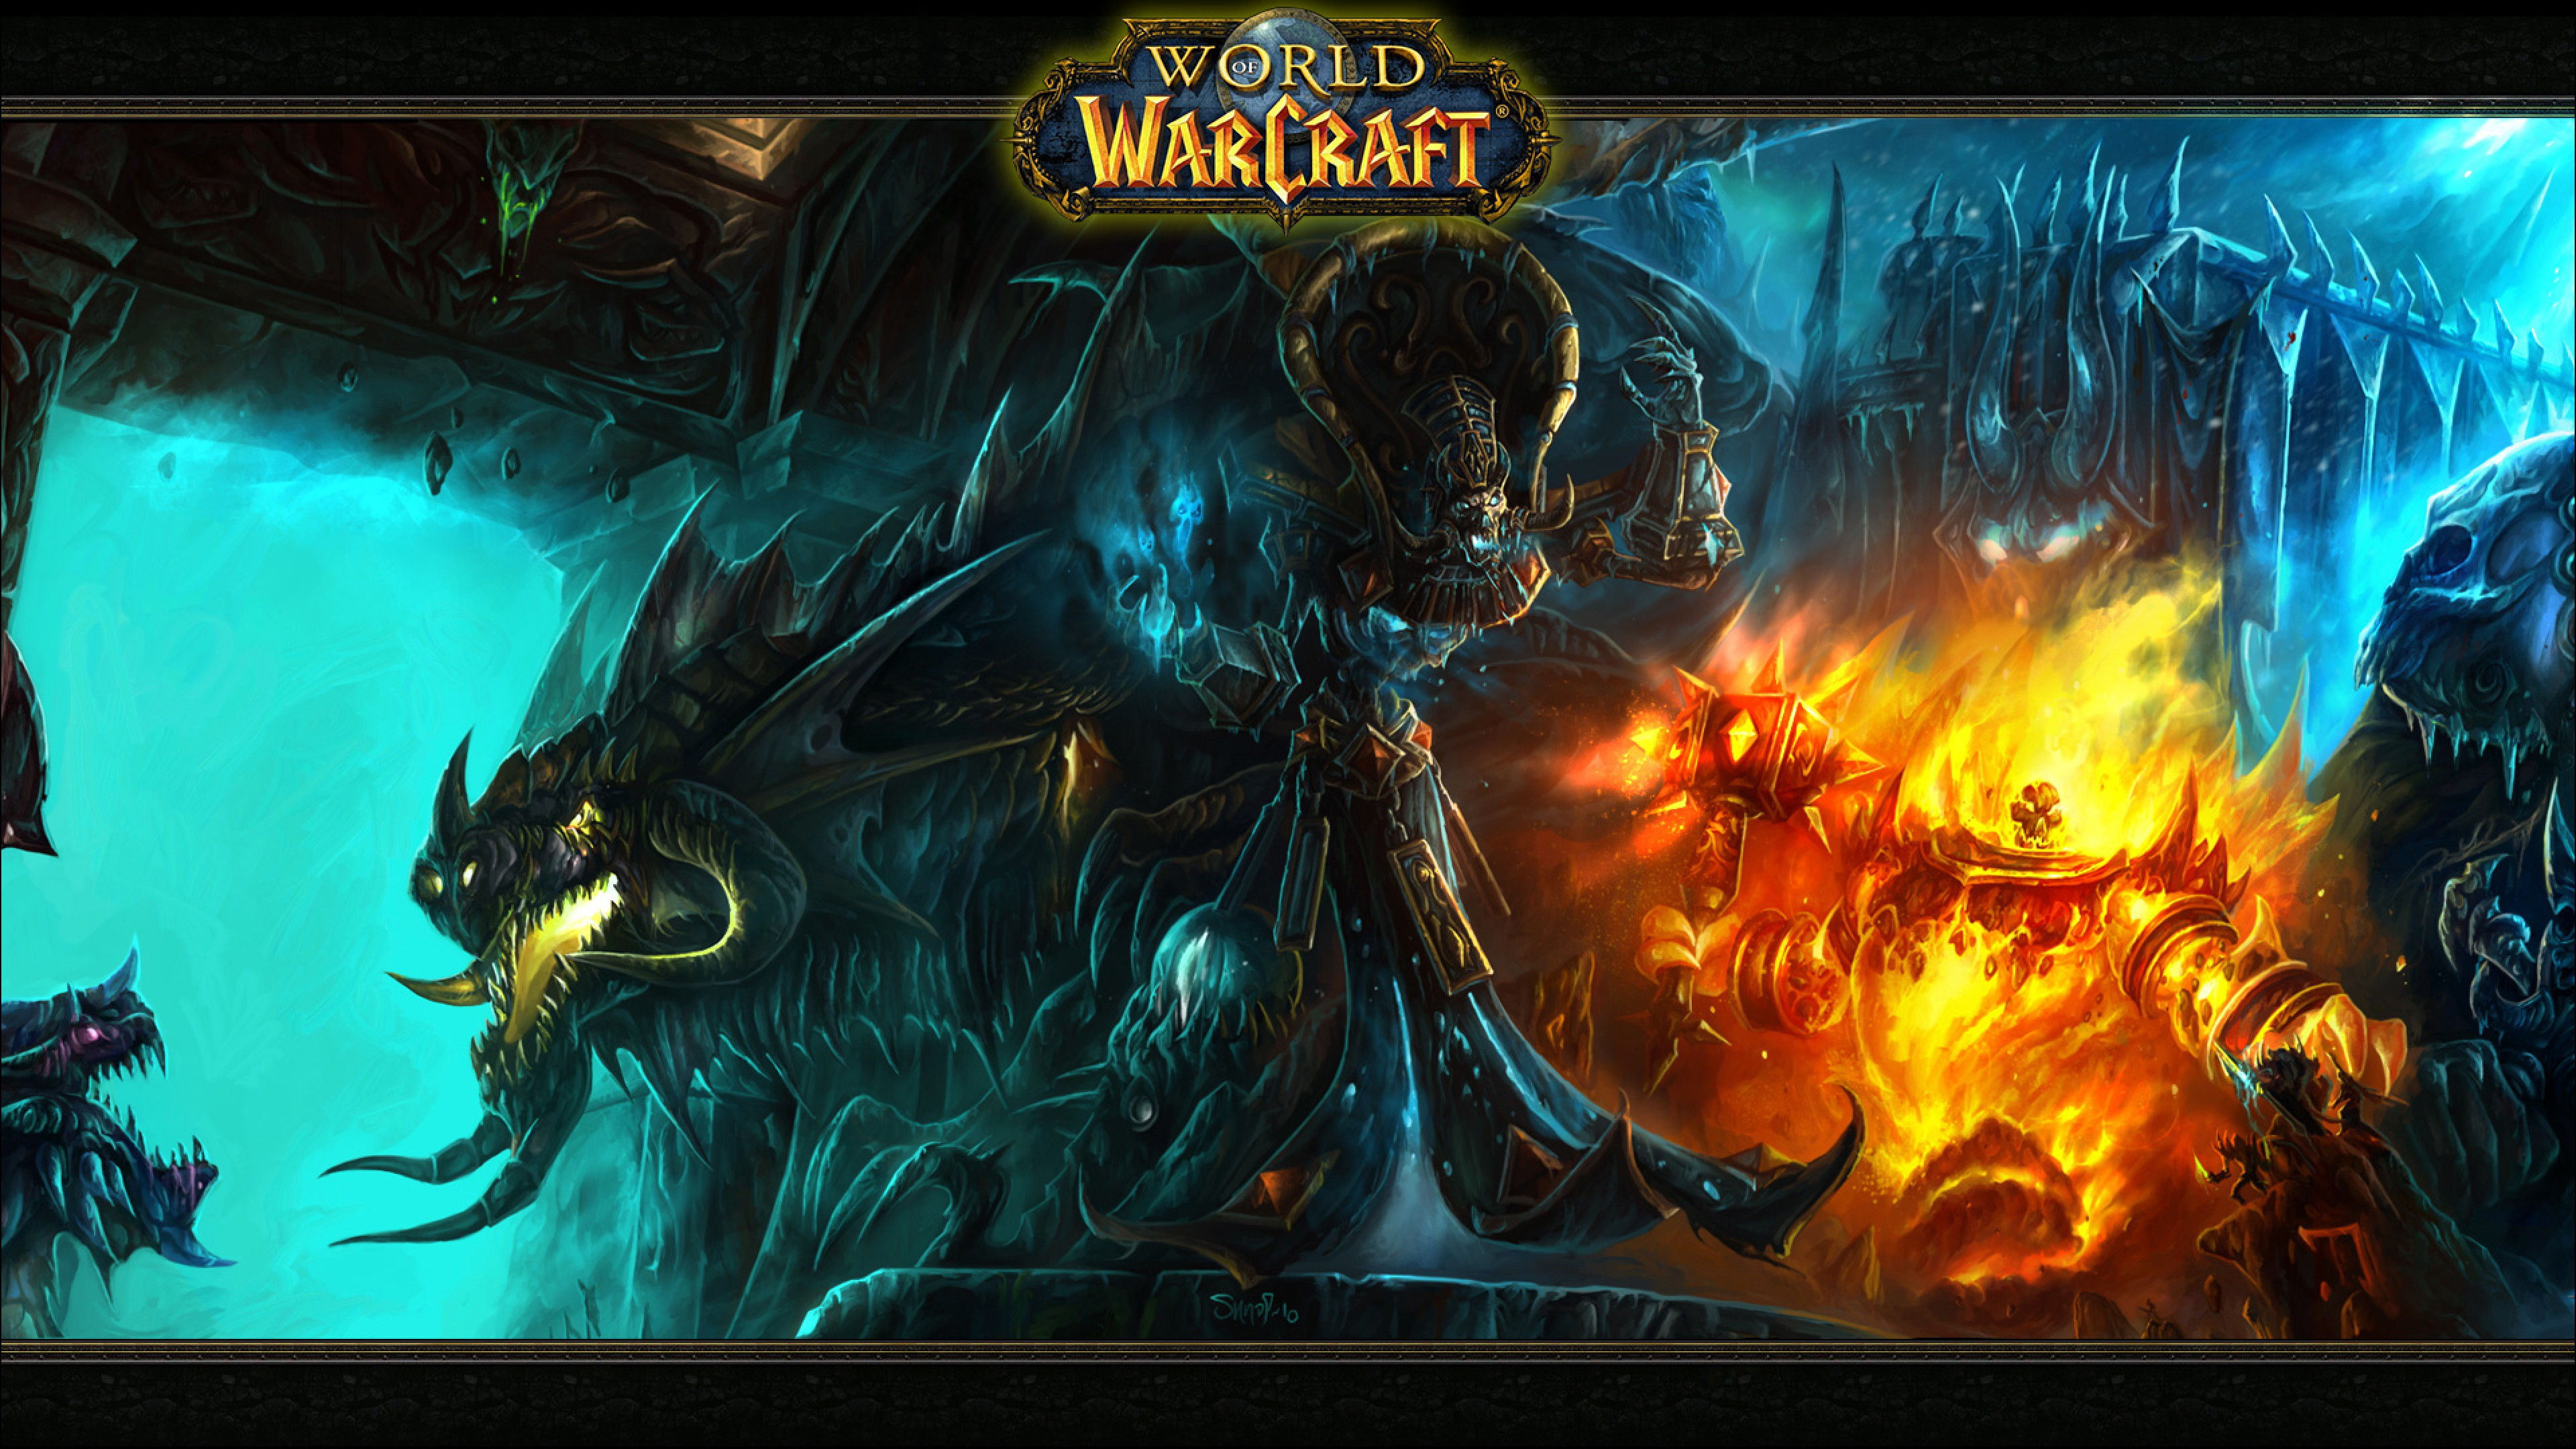 World Of Warcraft Wallpaper For Desktop And Mobiles 4K